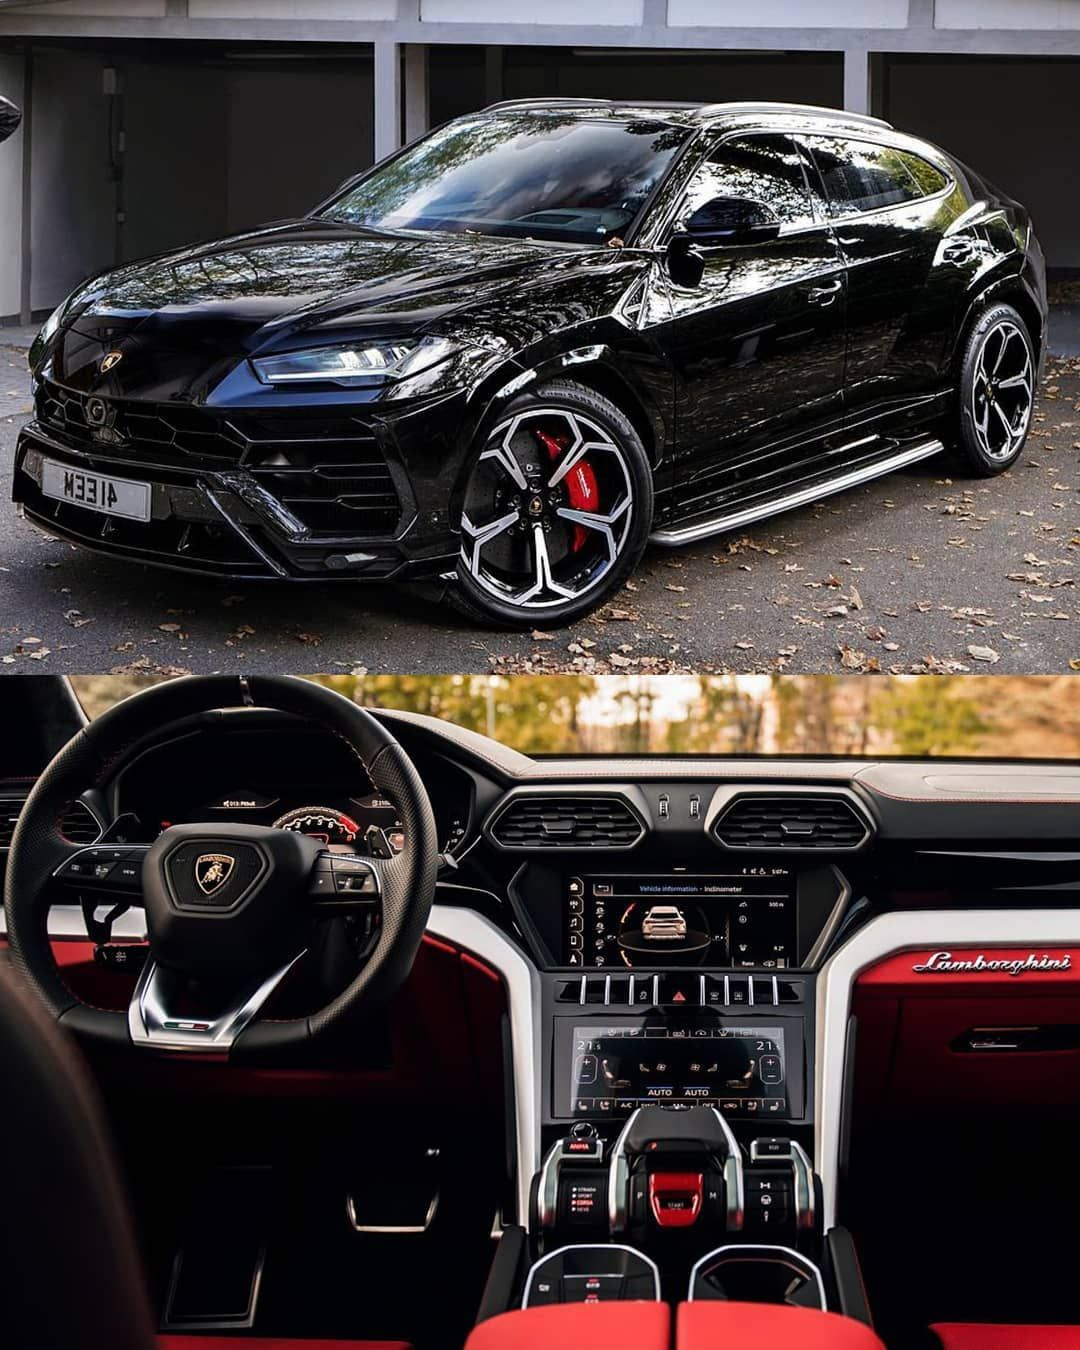 Lamborghini Urus 2019 Black Edition Red N Black Interior Rokenr Tonybet Highbossl Carros Carros Lamborghini Carros De Luxo